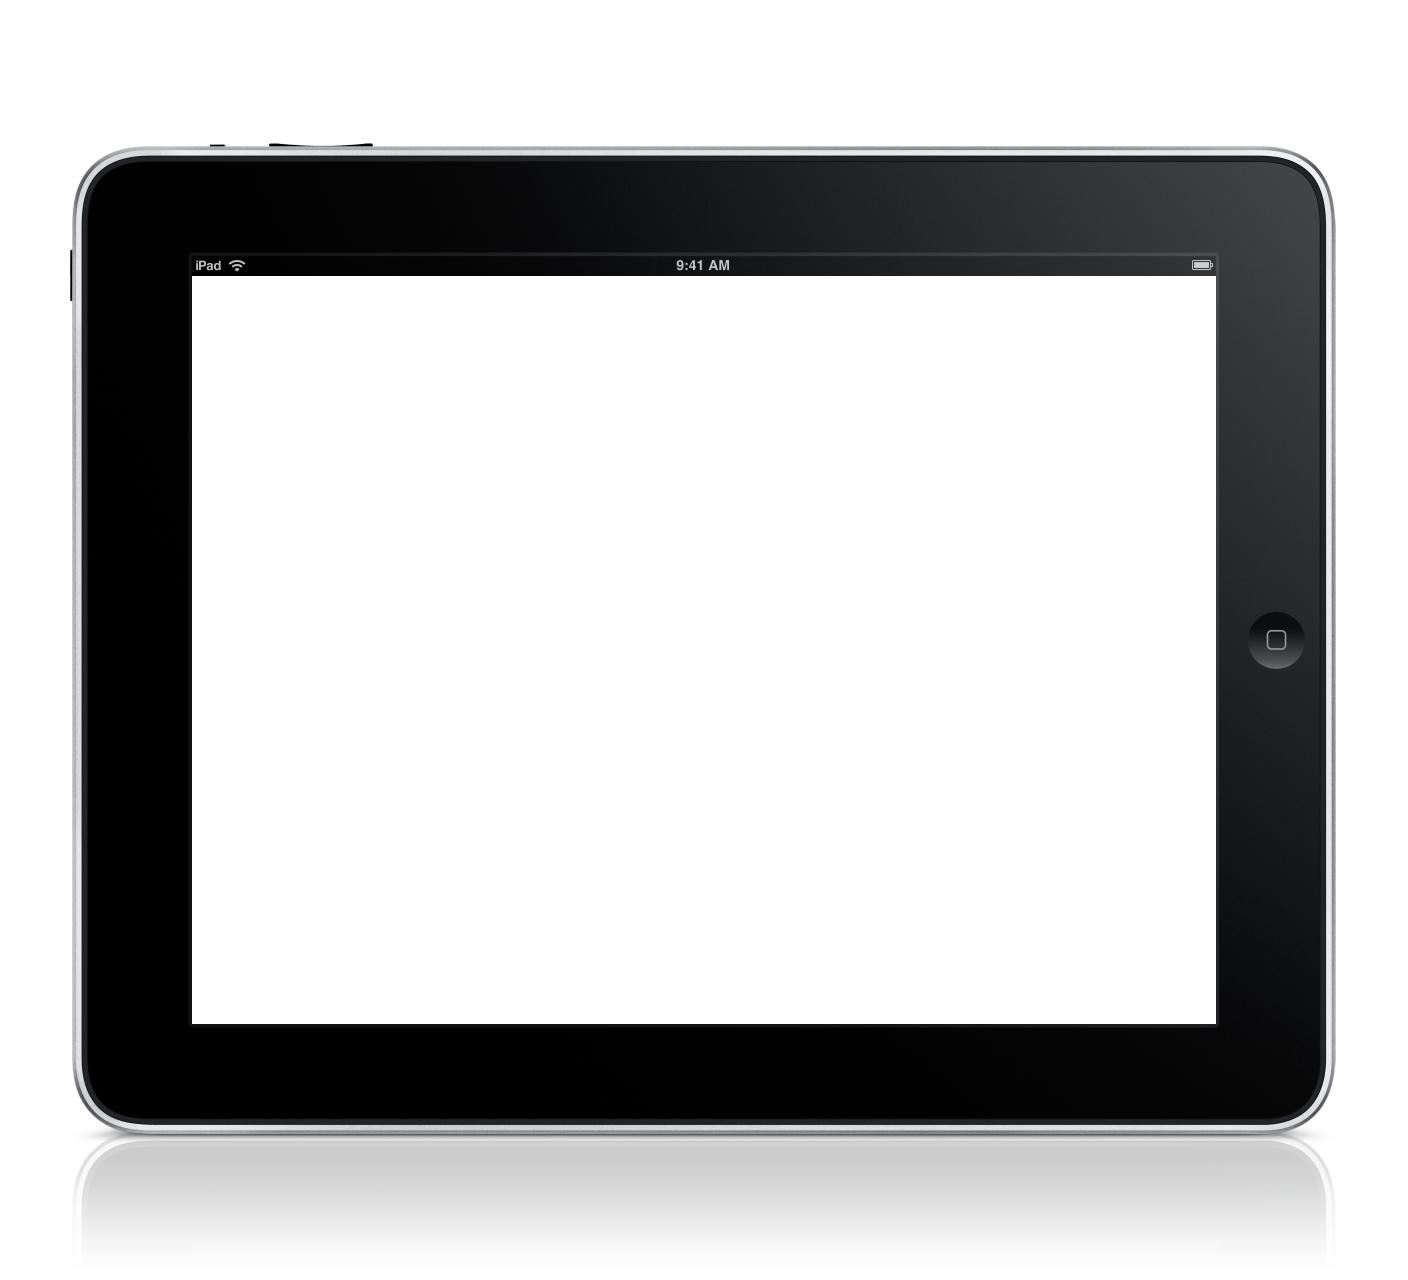 14 ipad icon template images ipad design template ipad apps icons templates and iphone app. Black Bedroom Furniture Sets. Home Design Ideas